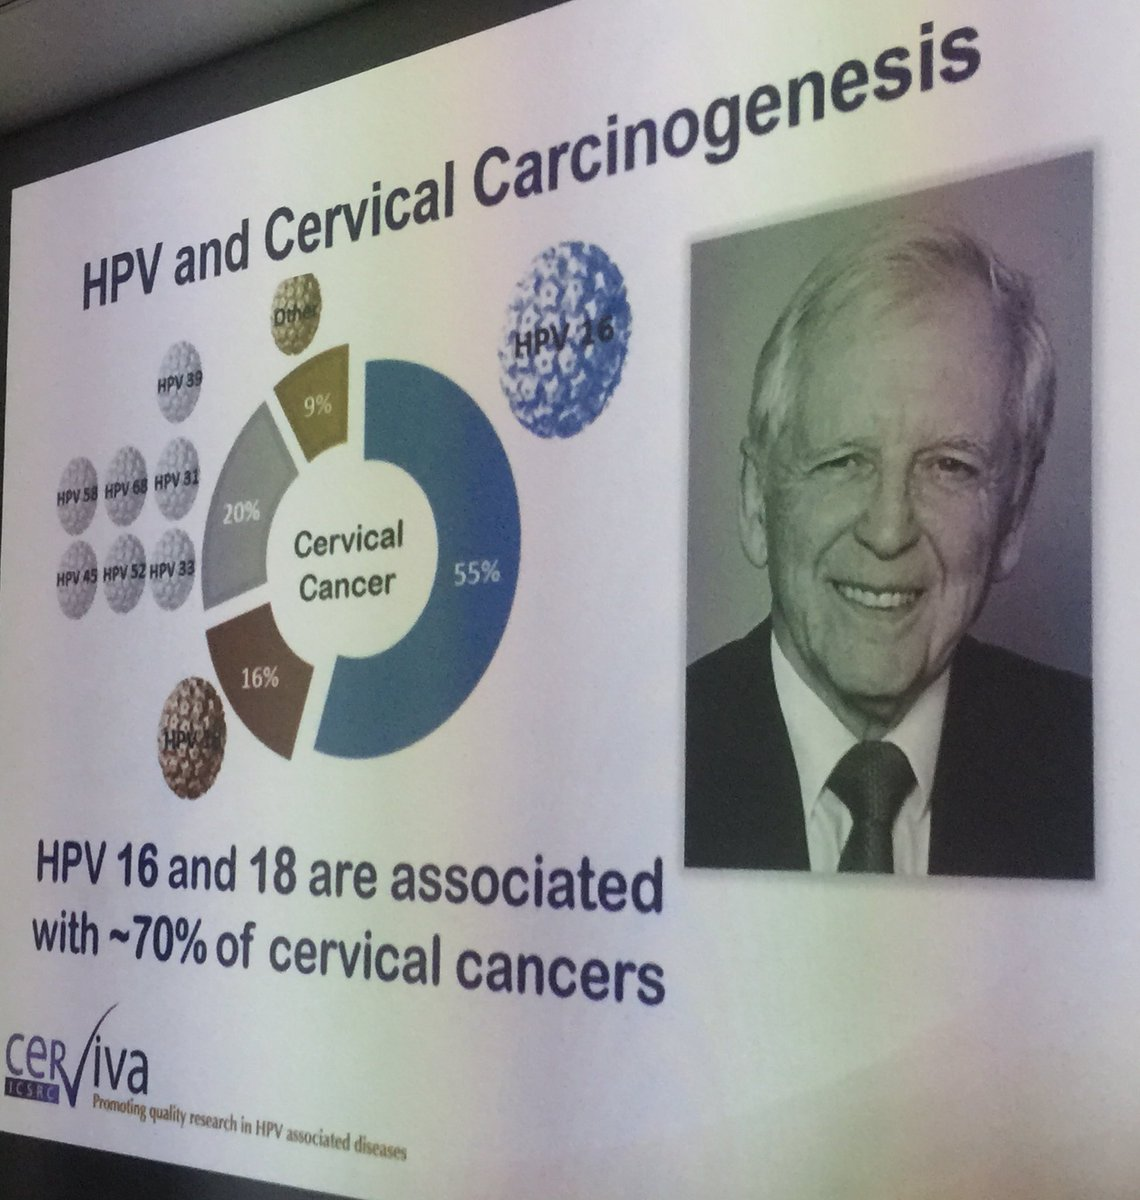 when was the link between hpv and cervical cancer discovered